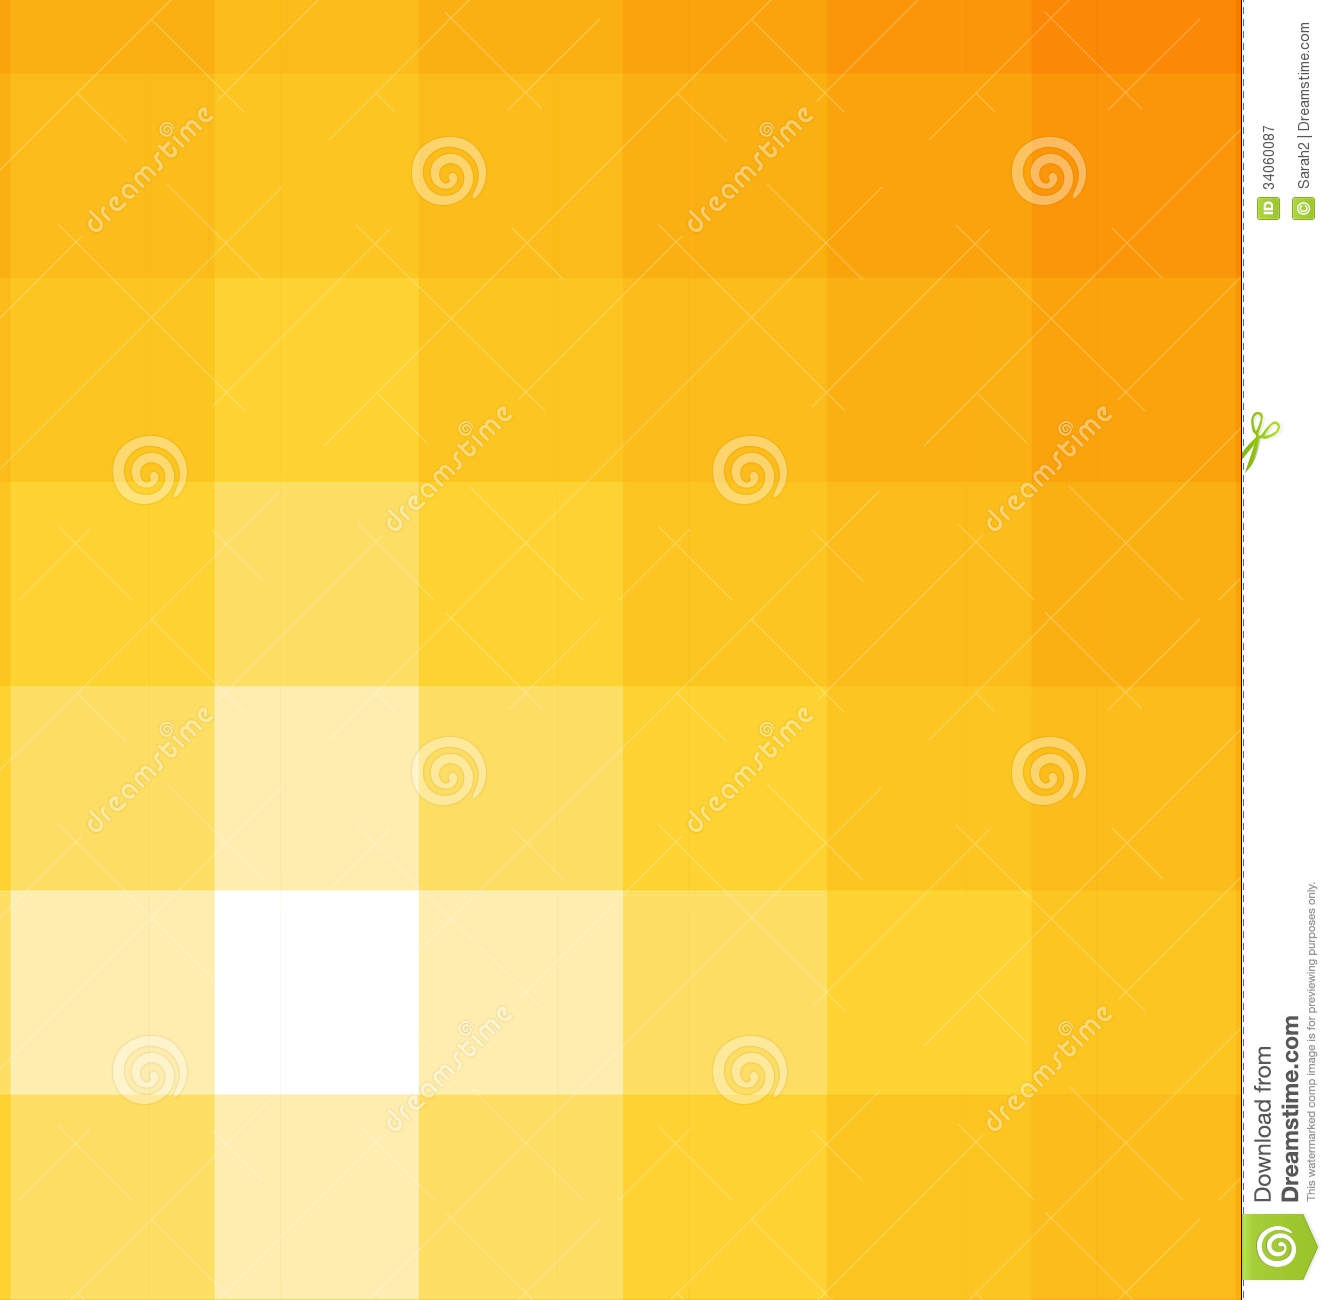 Yellow Shades shades of yellow square background royalty free stock photography